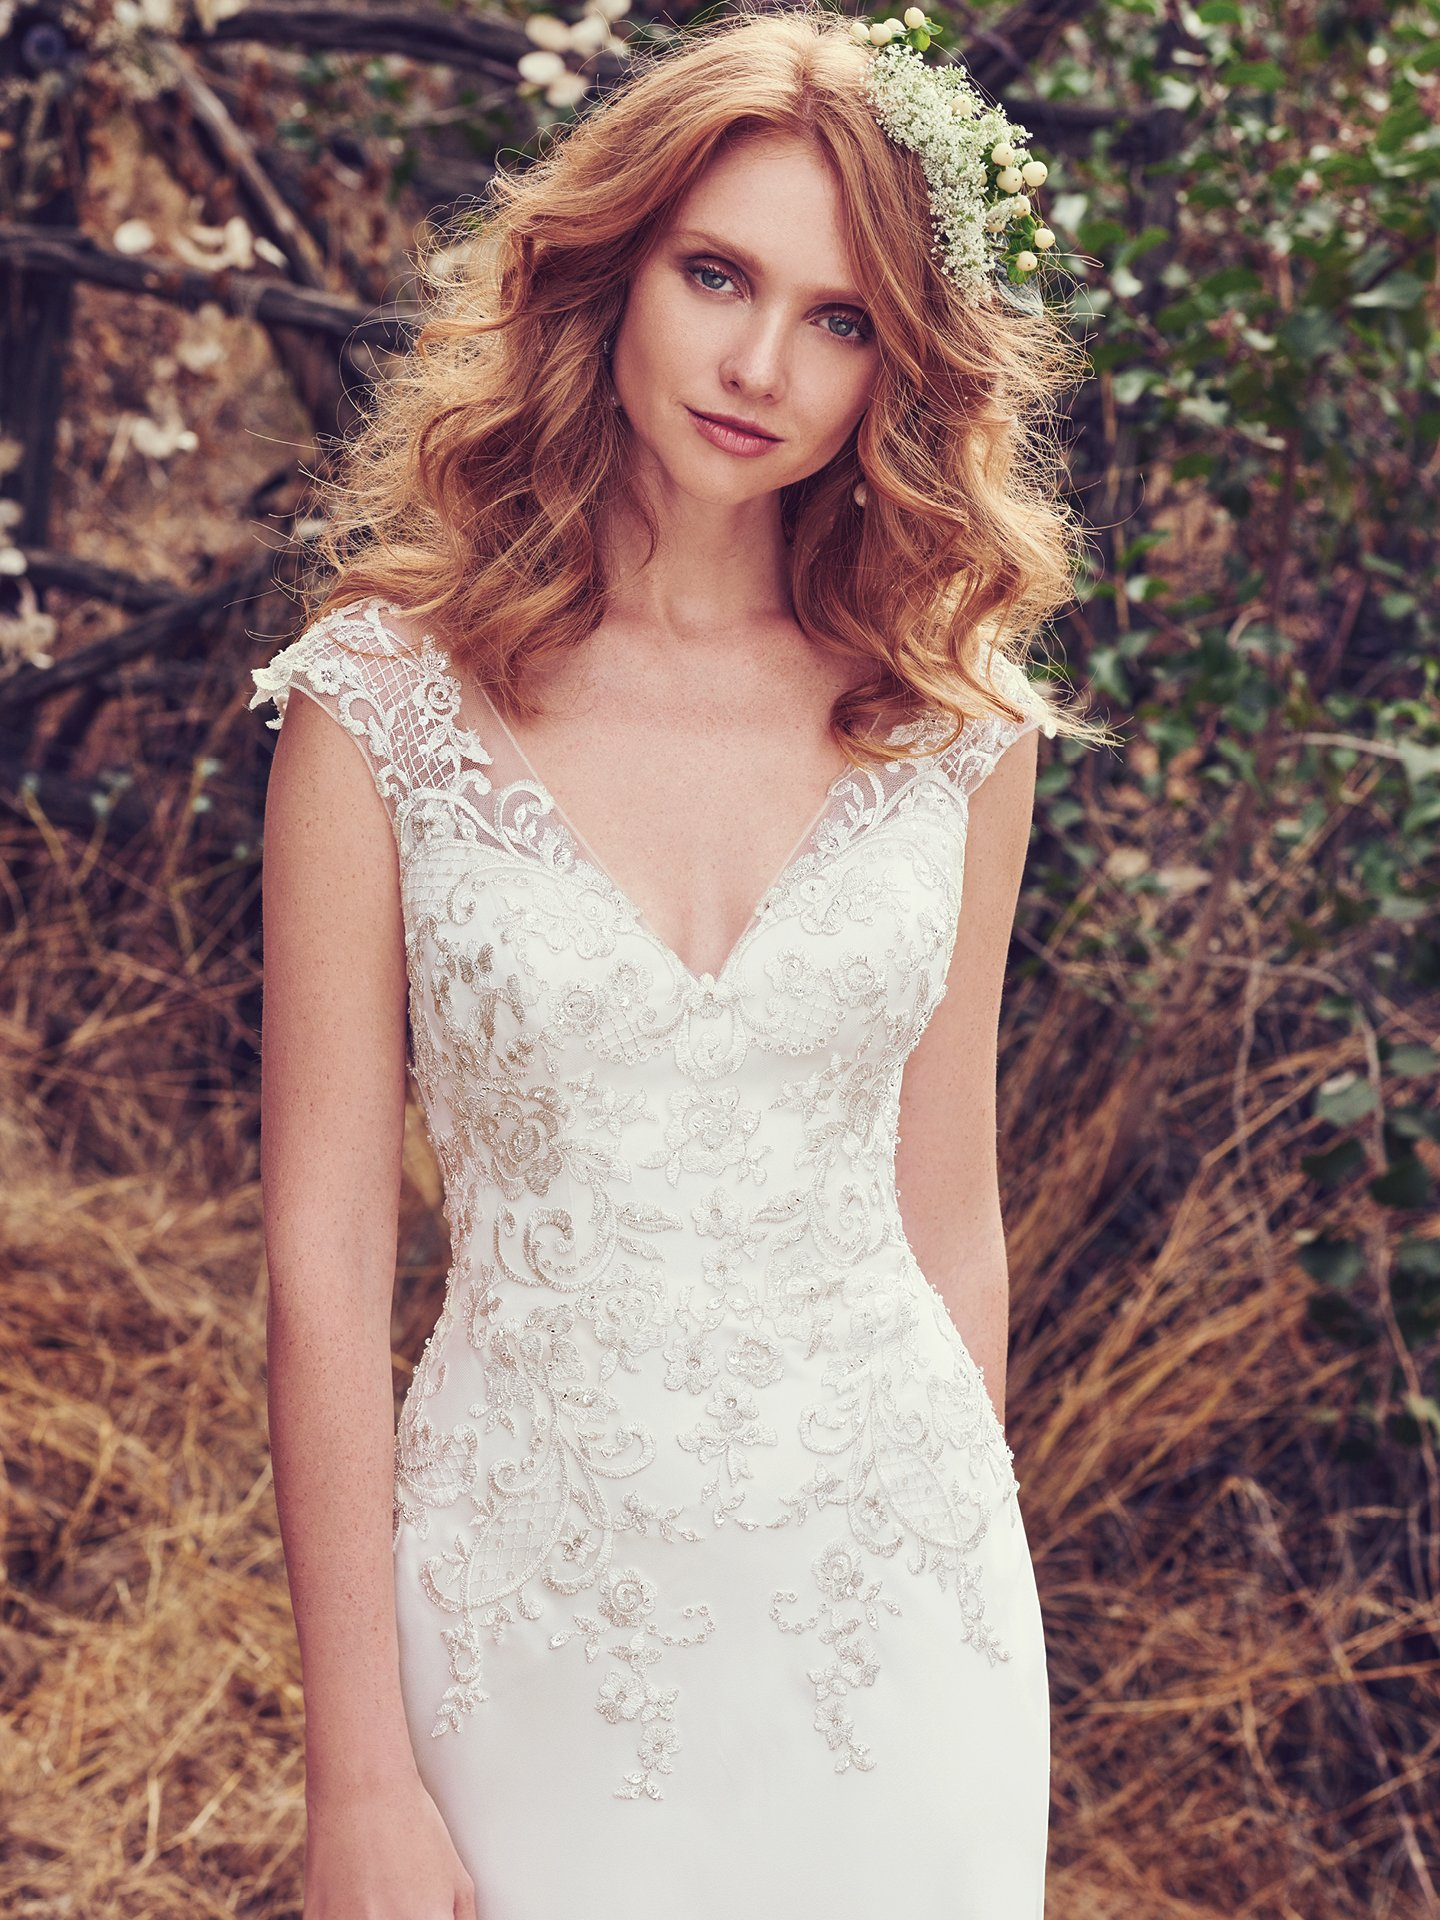 Slip Style Wedding Dresses Chic and Relaxed Brides. Estelle by Maggie Sottero. This romantic Orlando Satin sheath features lace appliqués accented in beads and Swarovski crystals along the bodice, illusion V over sweetheart neckline, cap-sleeves, and open V-back. A cutout train comprised of illusion lace appliqués completes the unique glamour of this wedding dress. Finished with zipper closure.